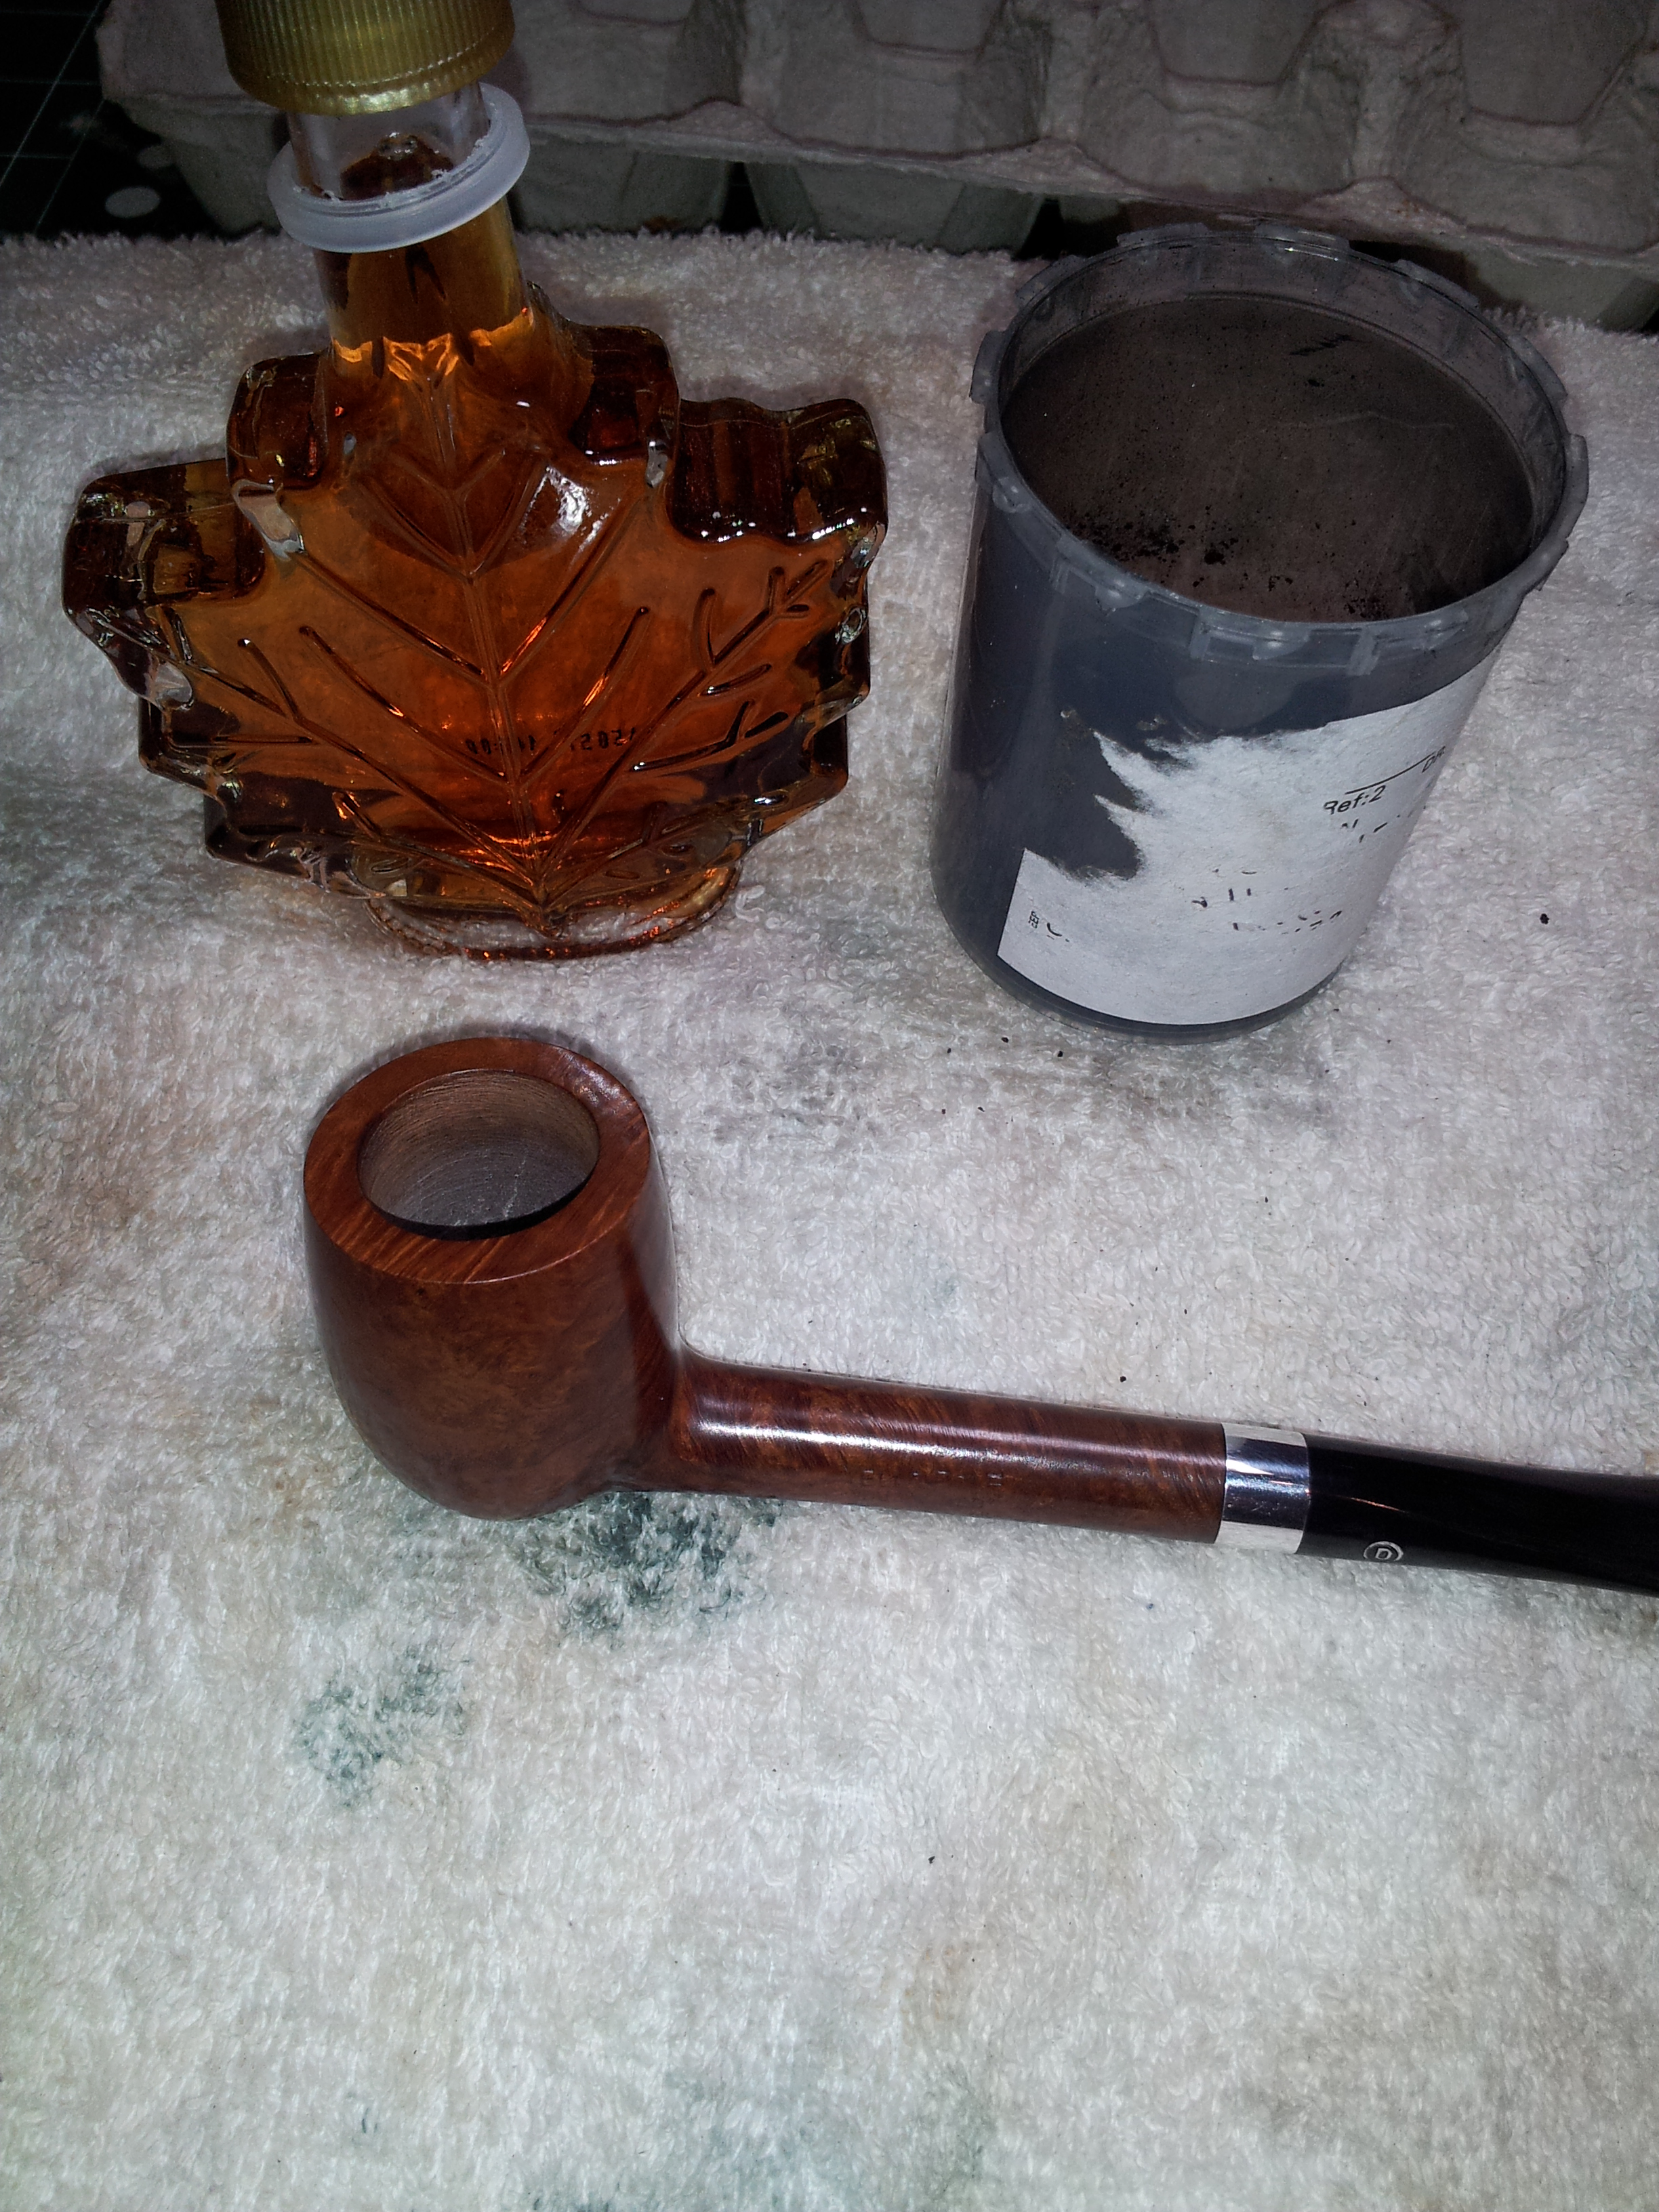 Internal Injuries – Repairing an Over-Reamed Bowl and